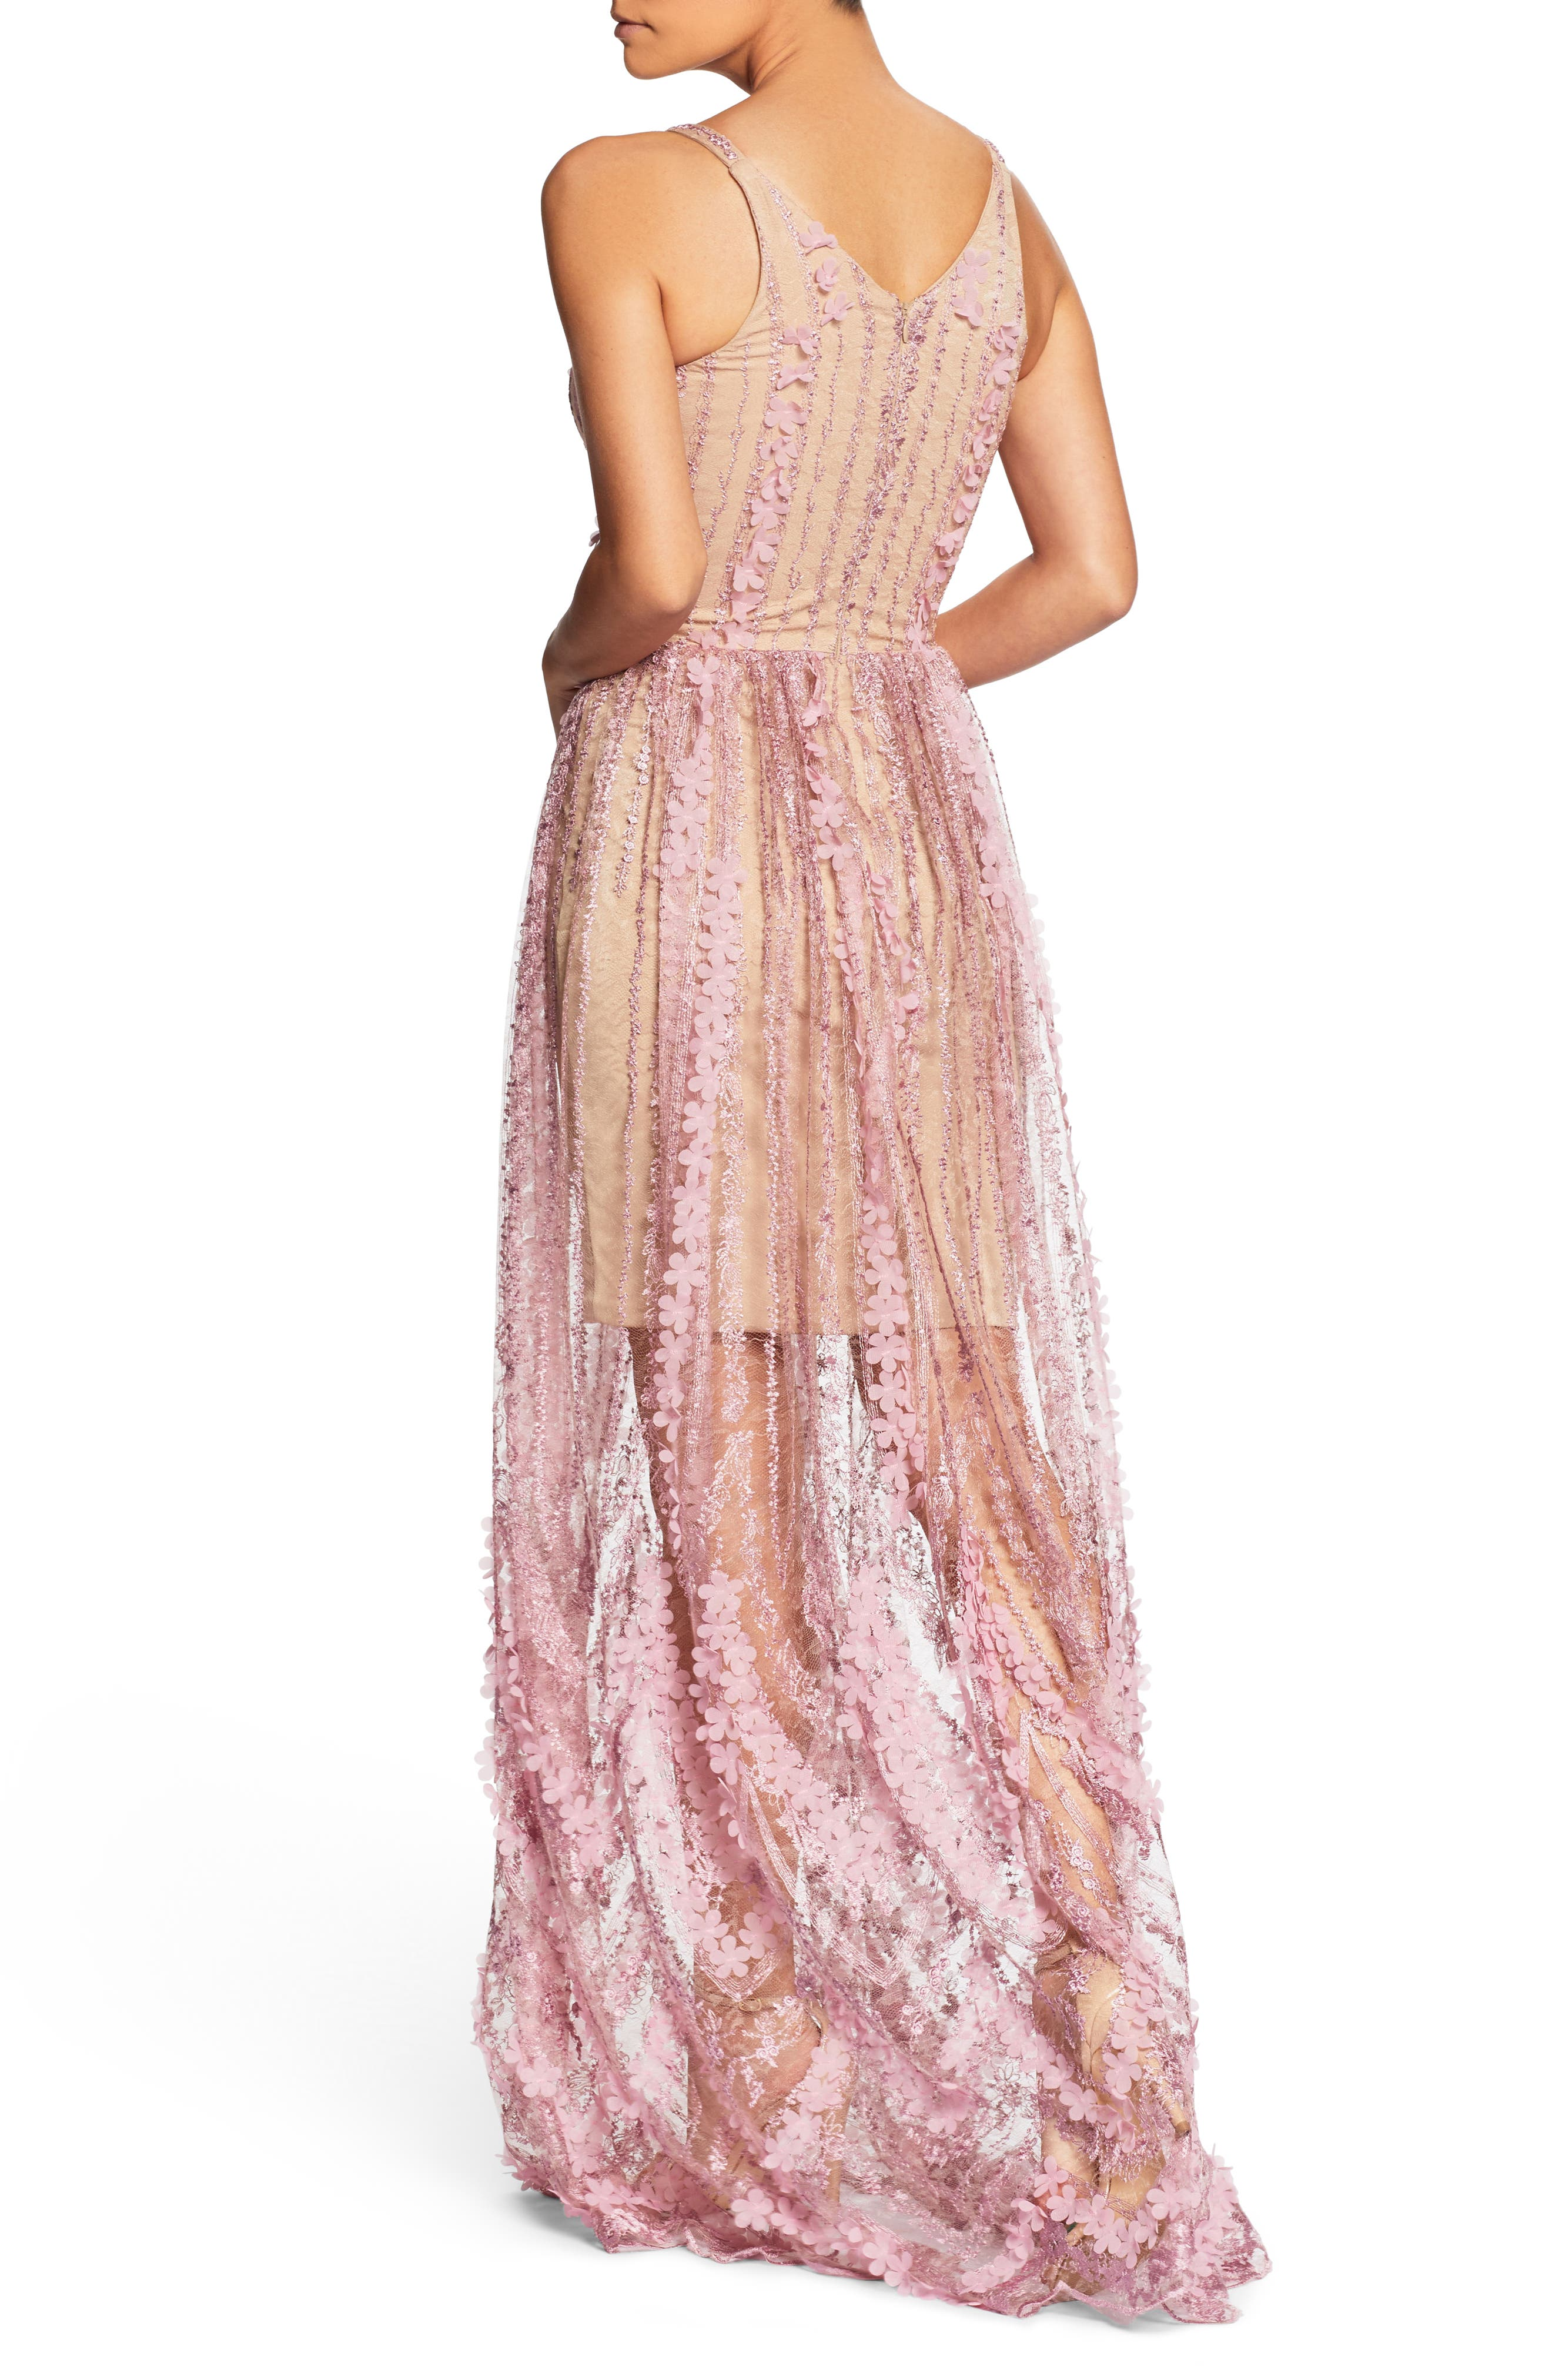 Chelsea Lace A-Line Gown,                             Alternate thumbnail 2, color,                             Lilac/ Nude